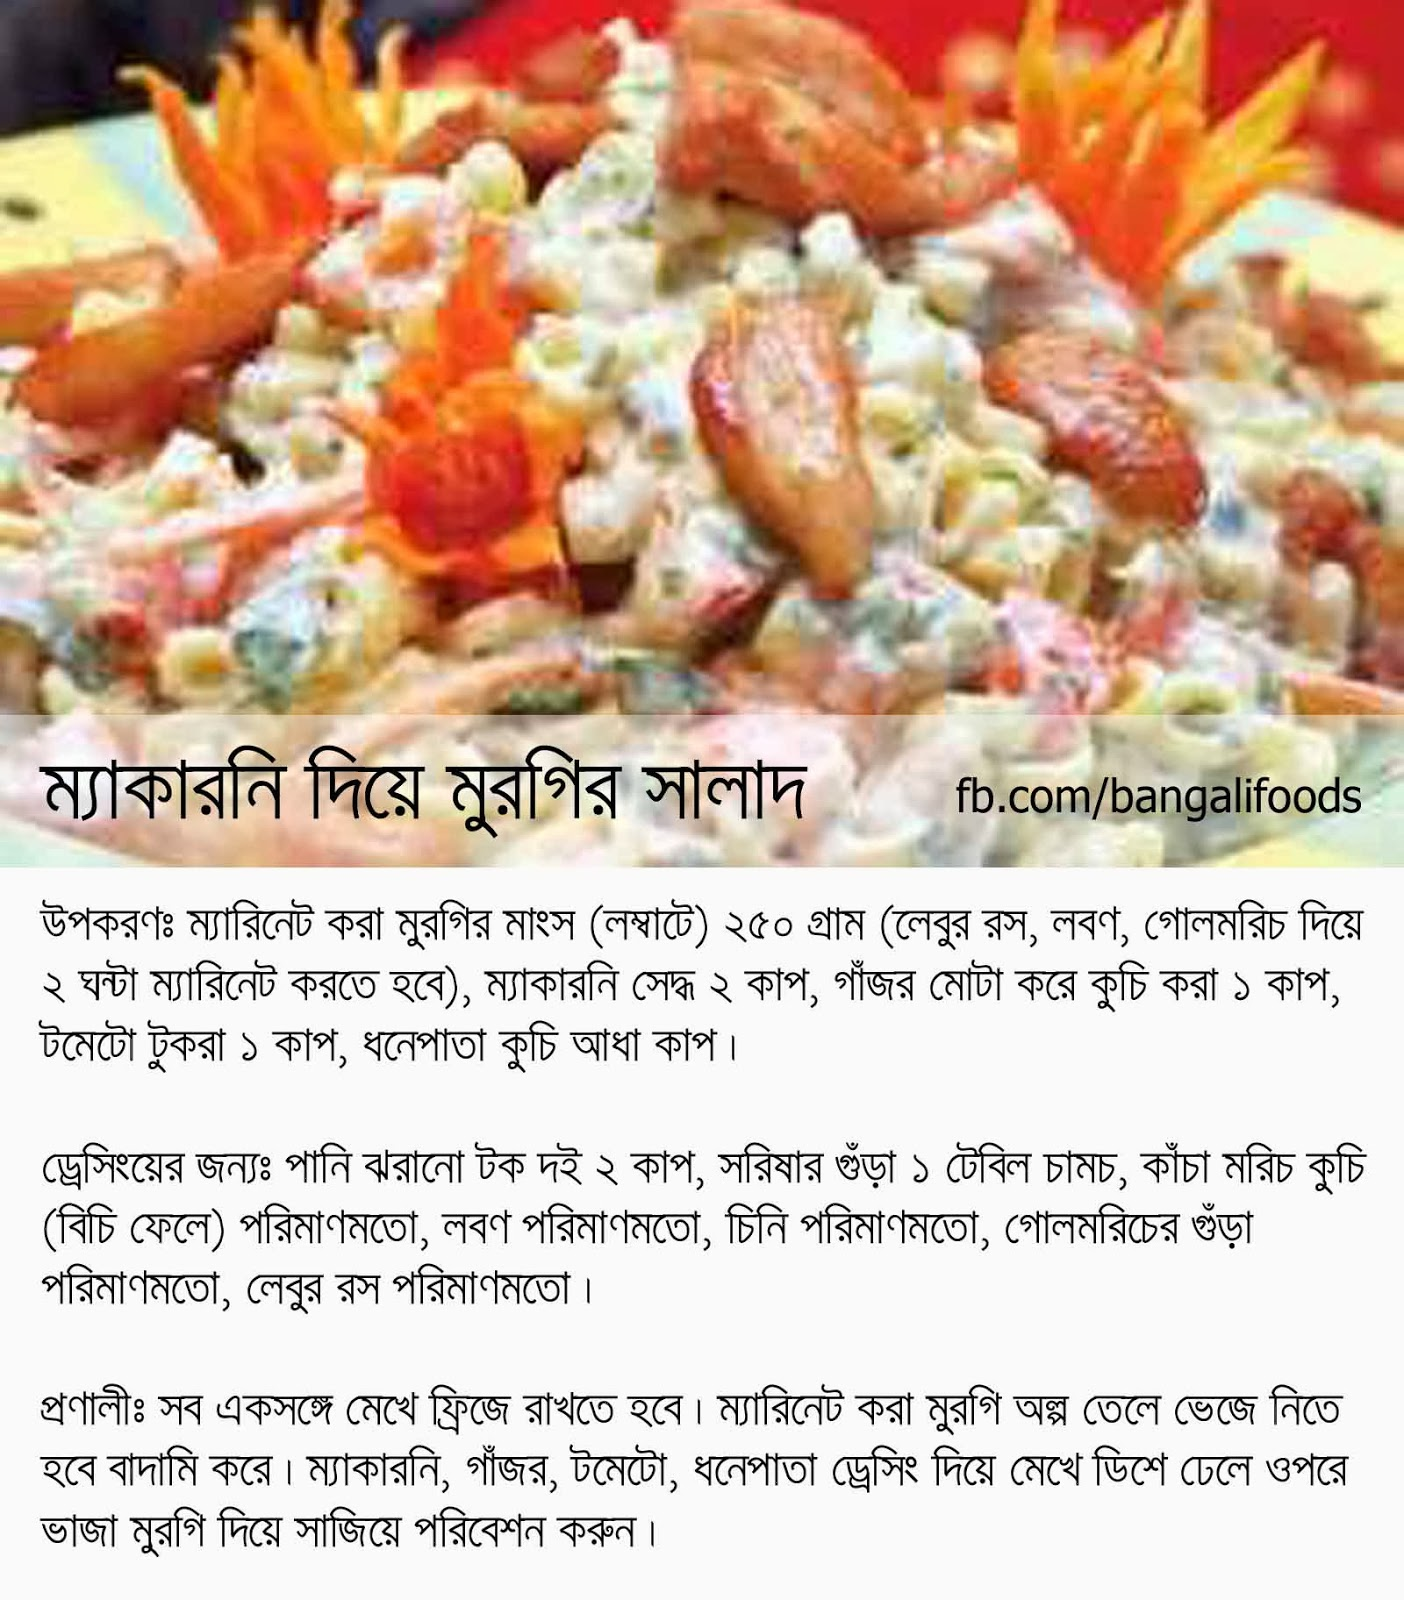 Bangali foods four tasty salad recipe with chicken in bangla four types of tasty chicken salad recipes in bangla font forumfinder Image collections